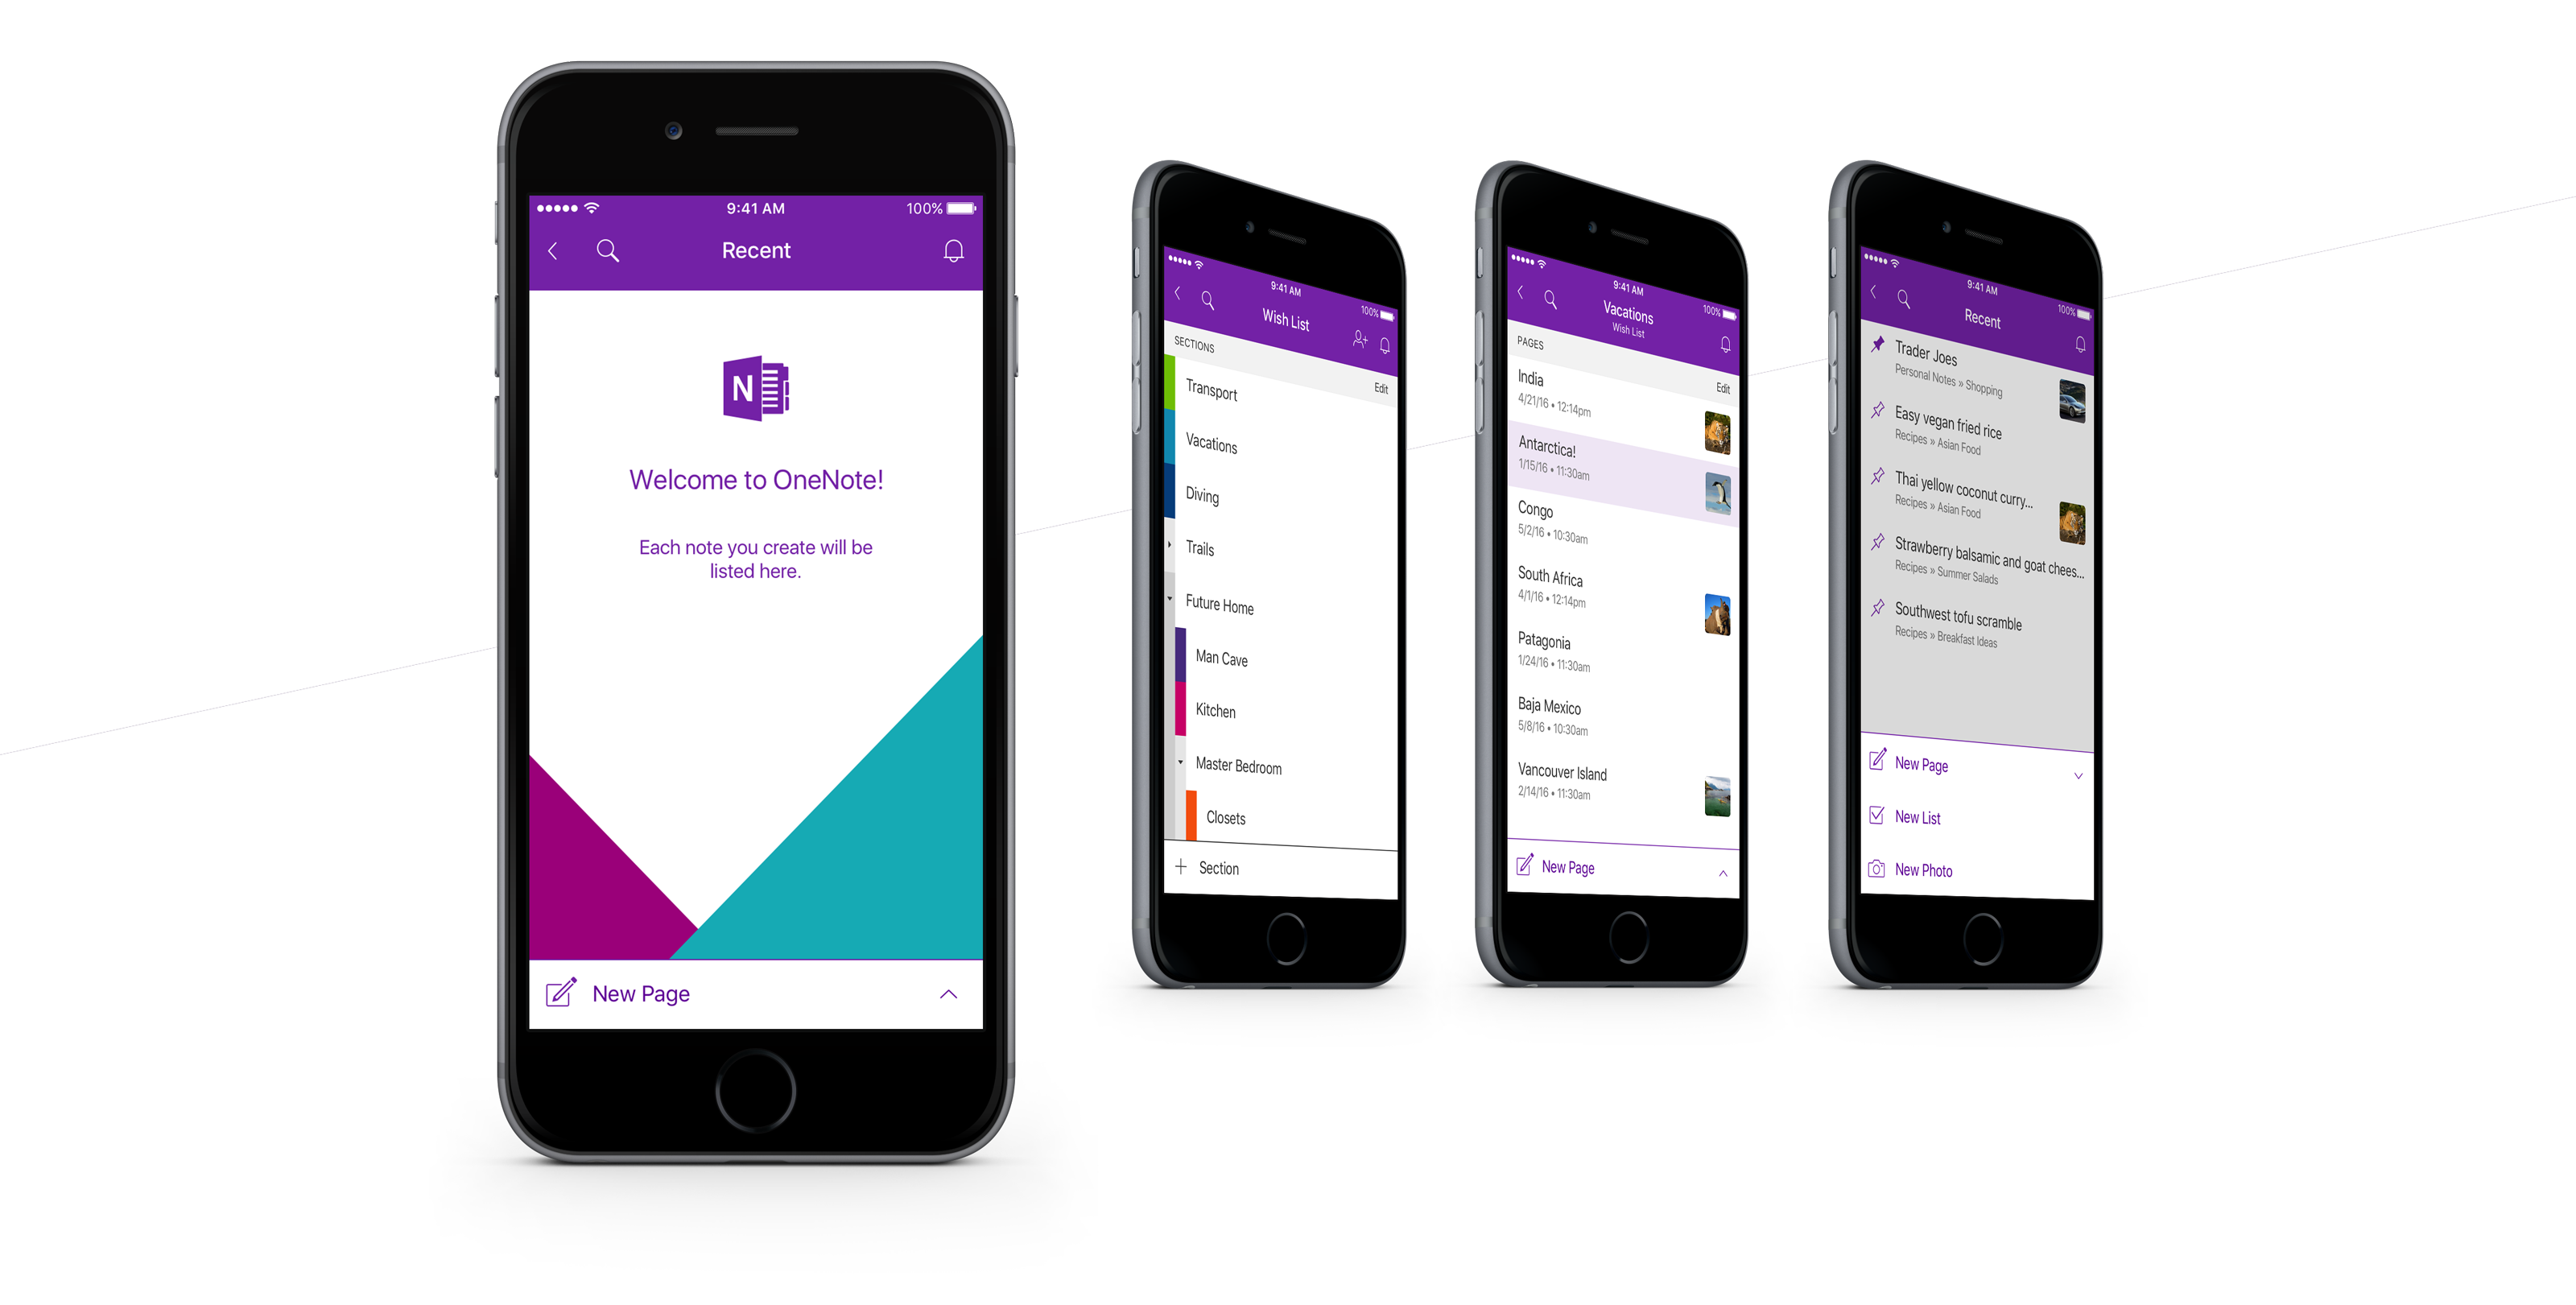 4 floating iPhones in a row displaying screens of a newly redesigned OneNote app